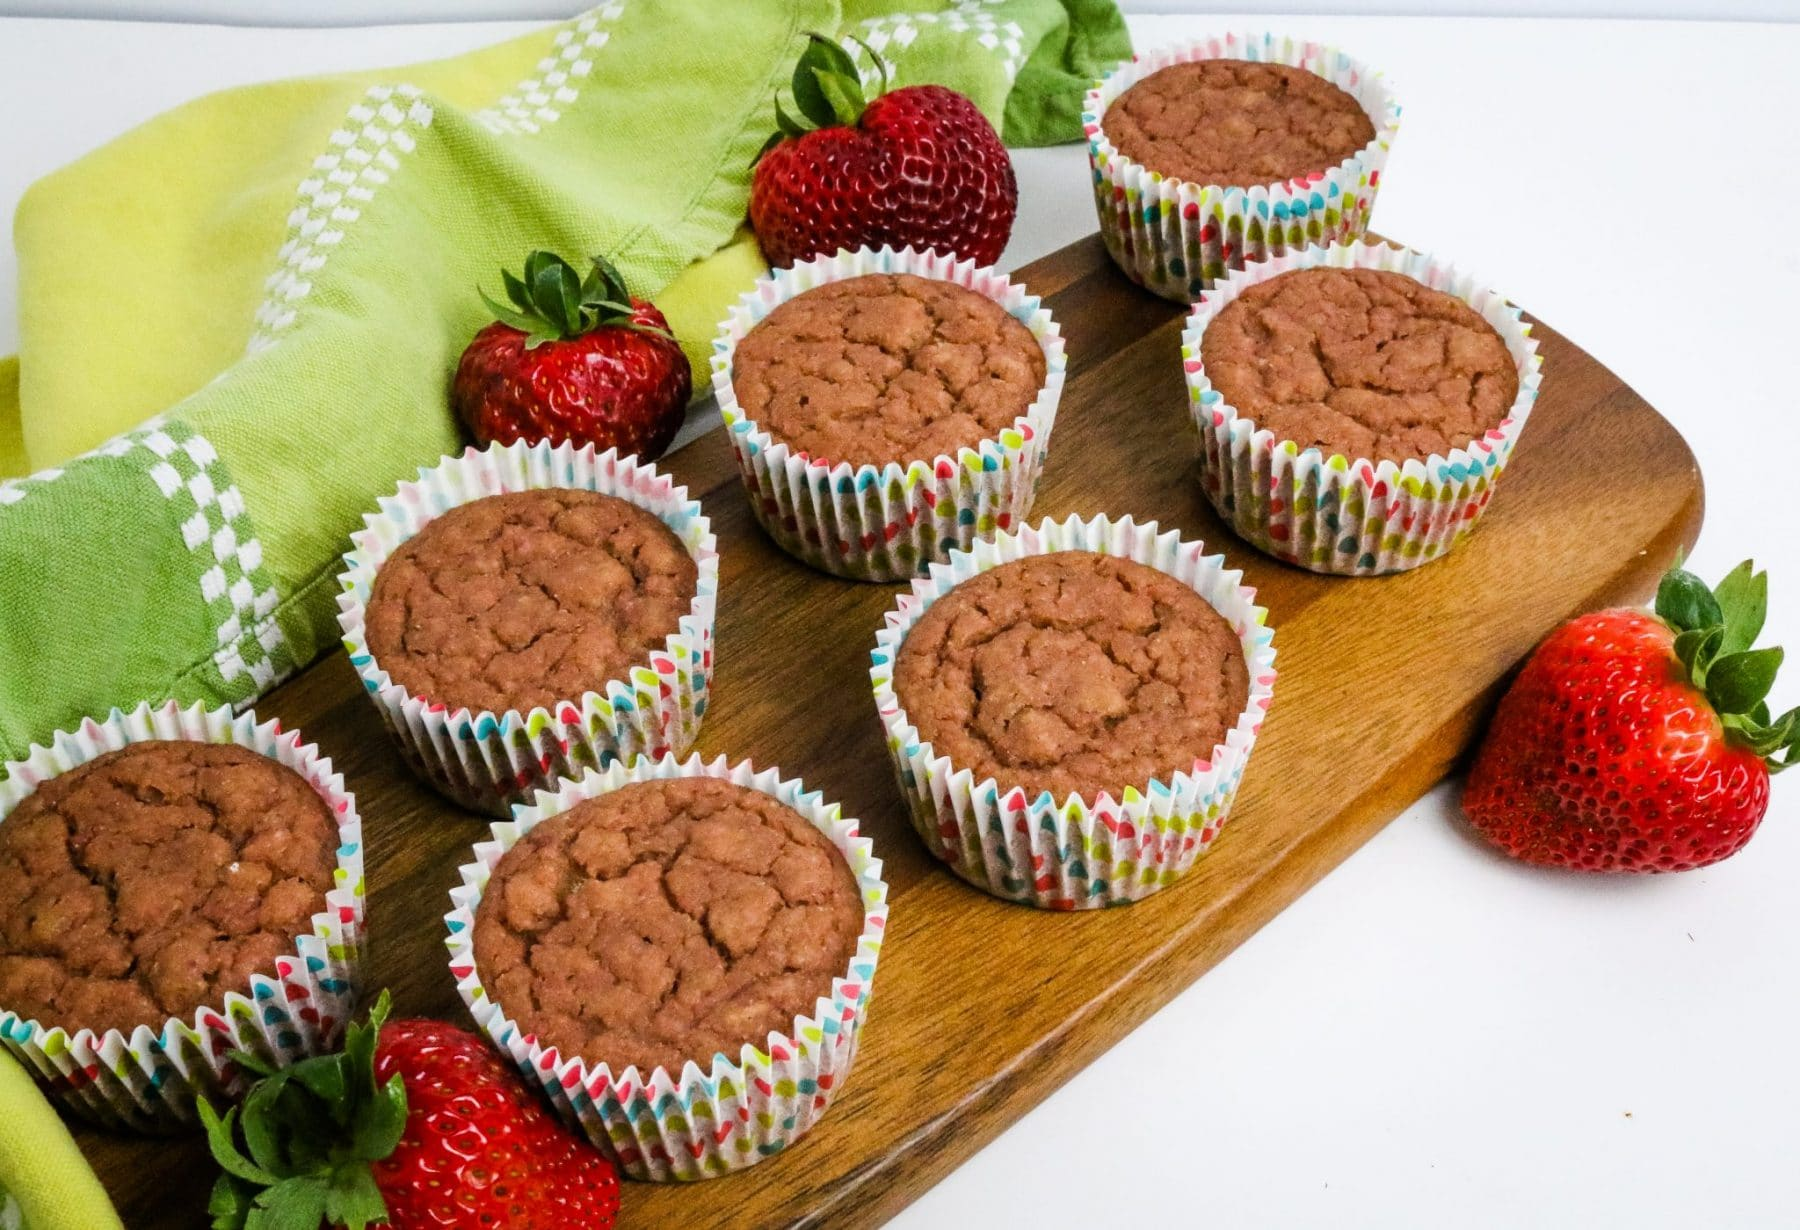 strawberry muffins on a brown cutting board